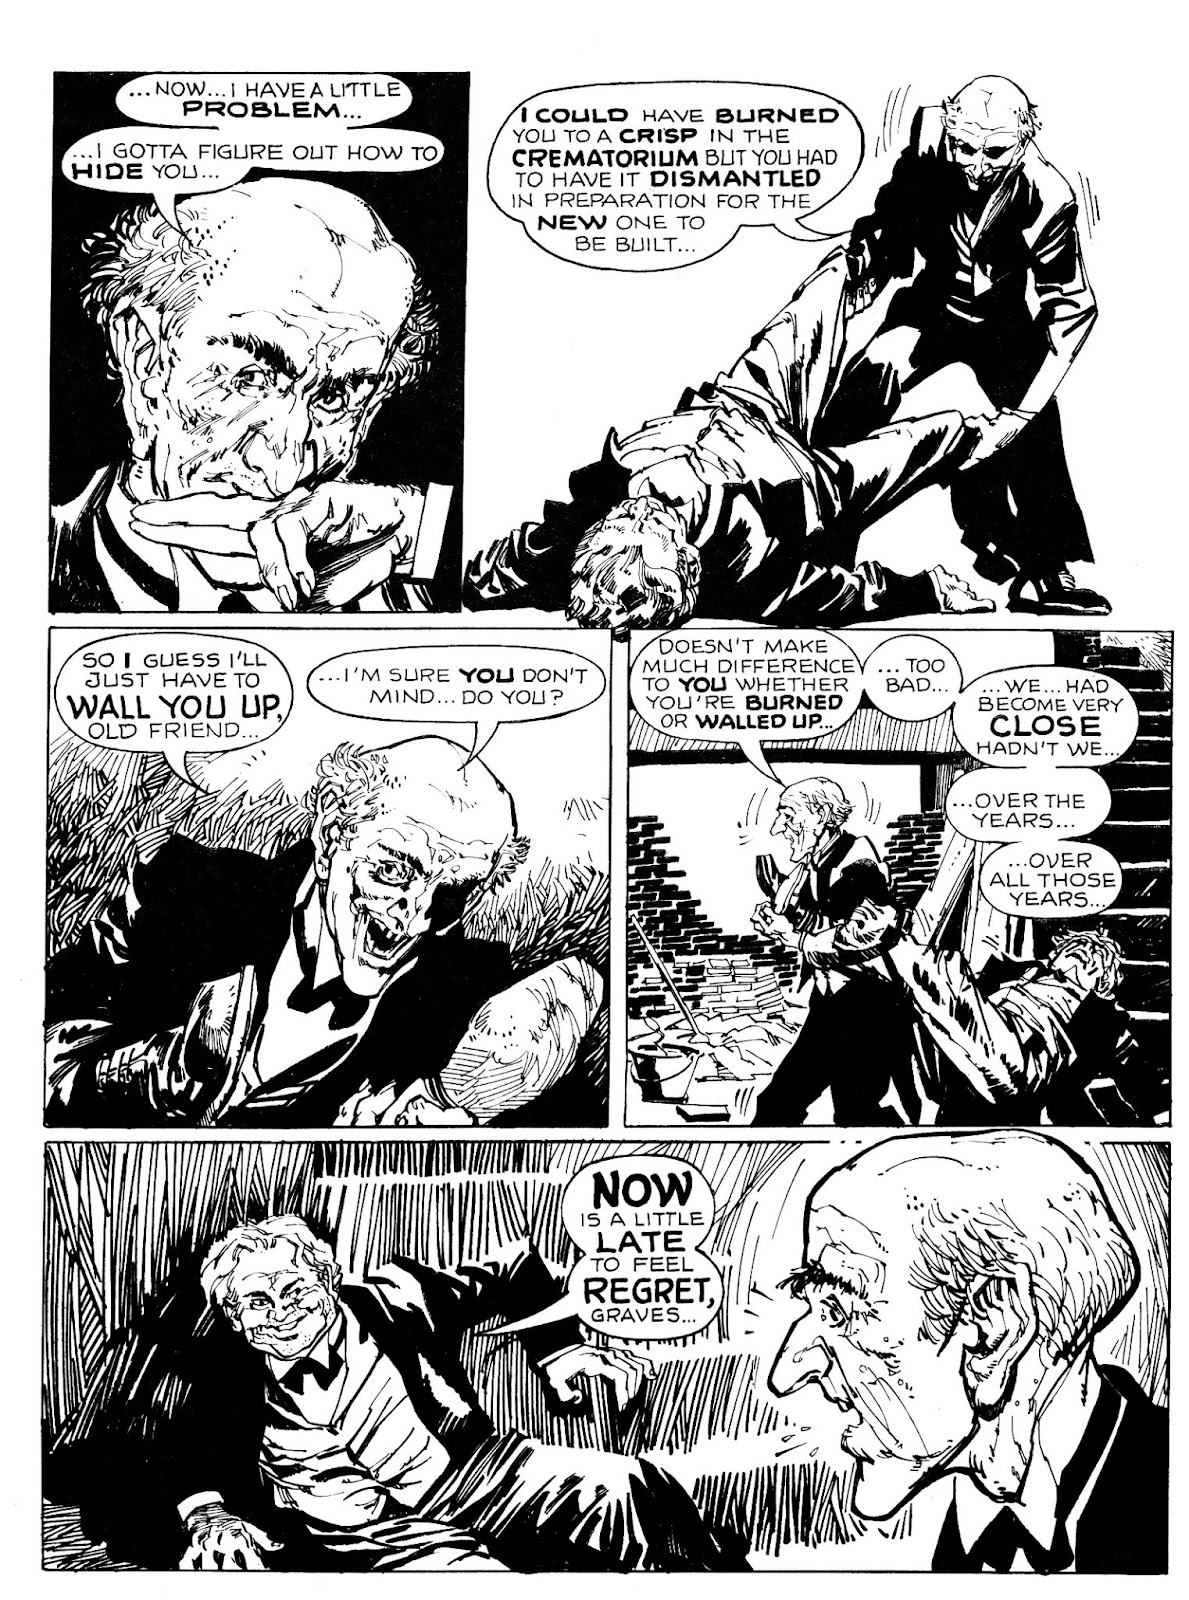 Scream (1973) issue 3 - Page 50